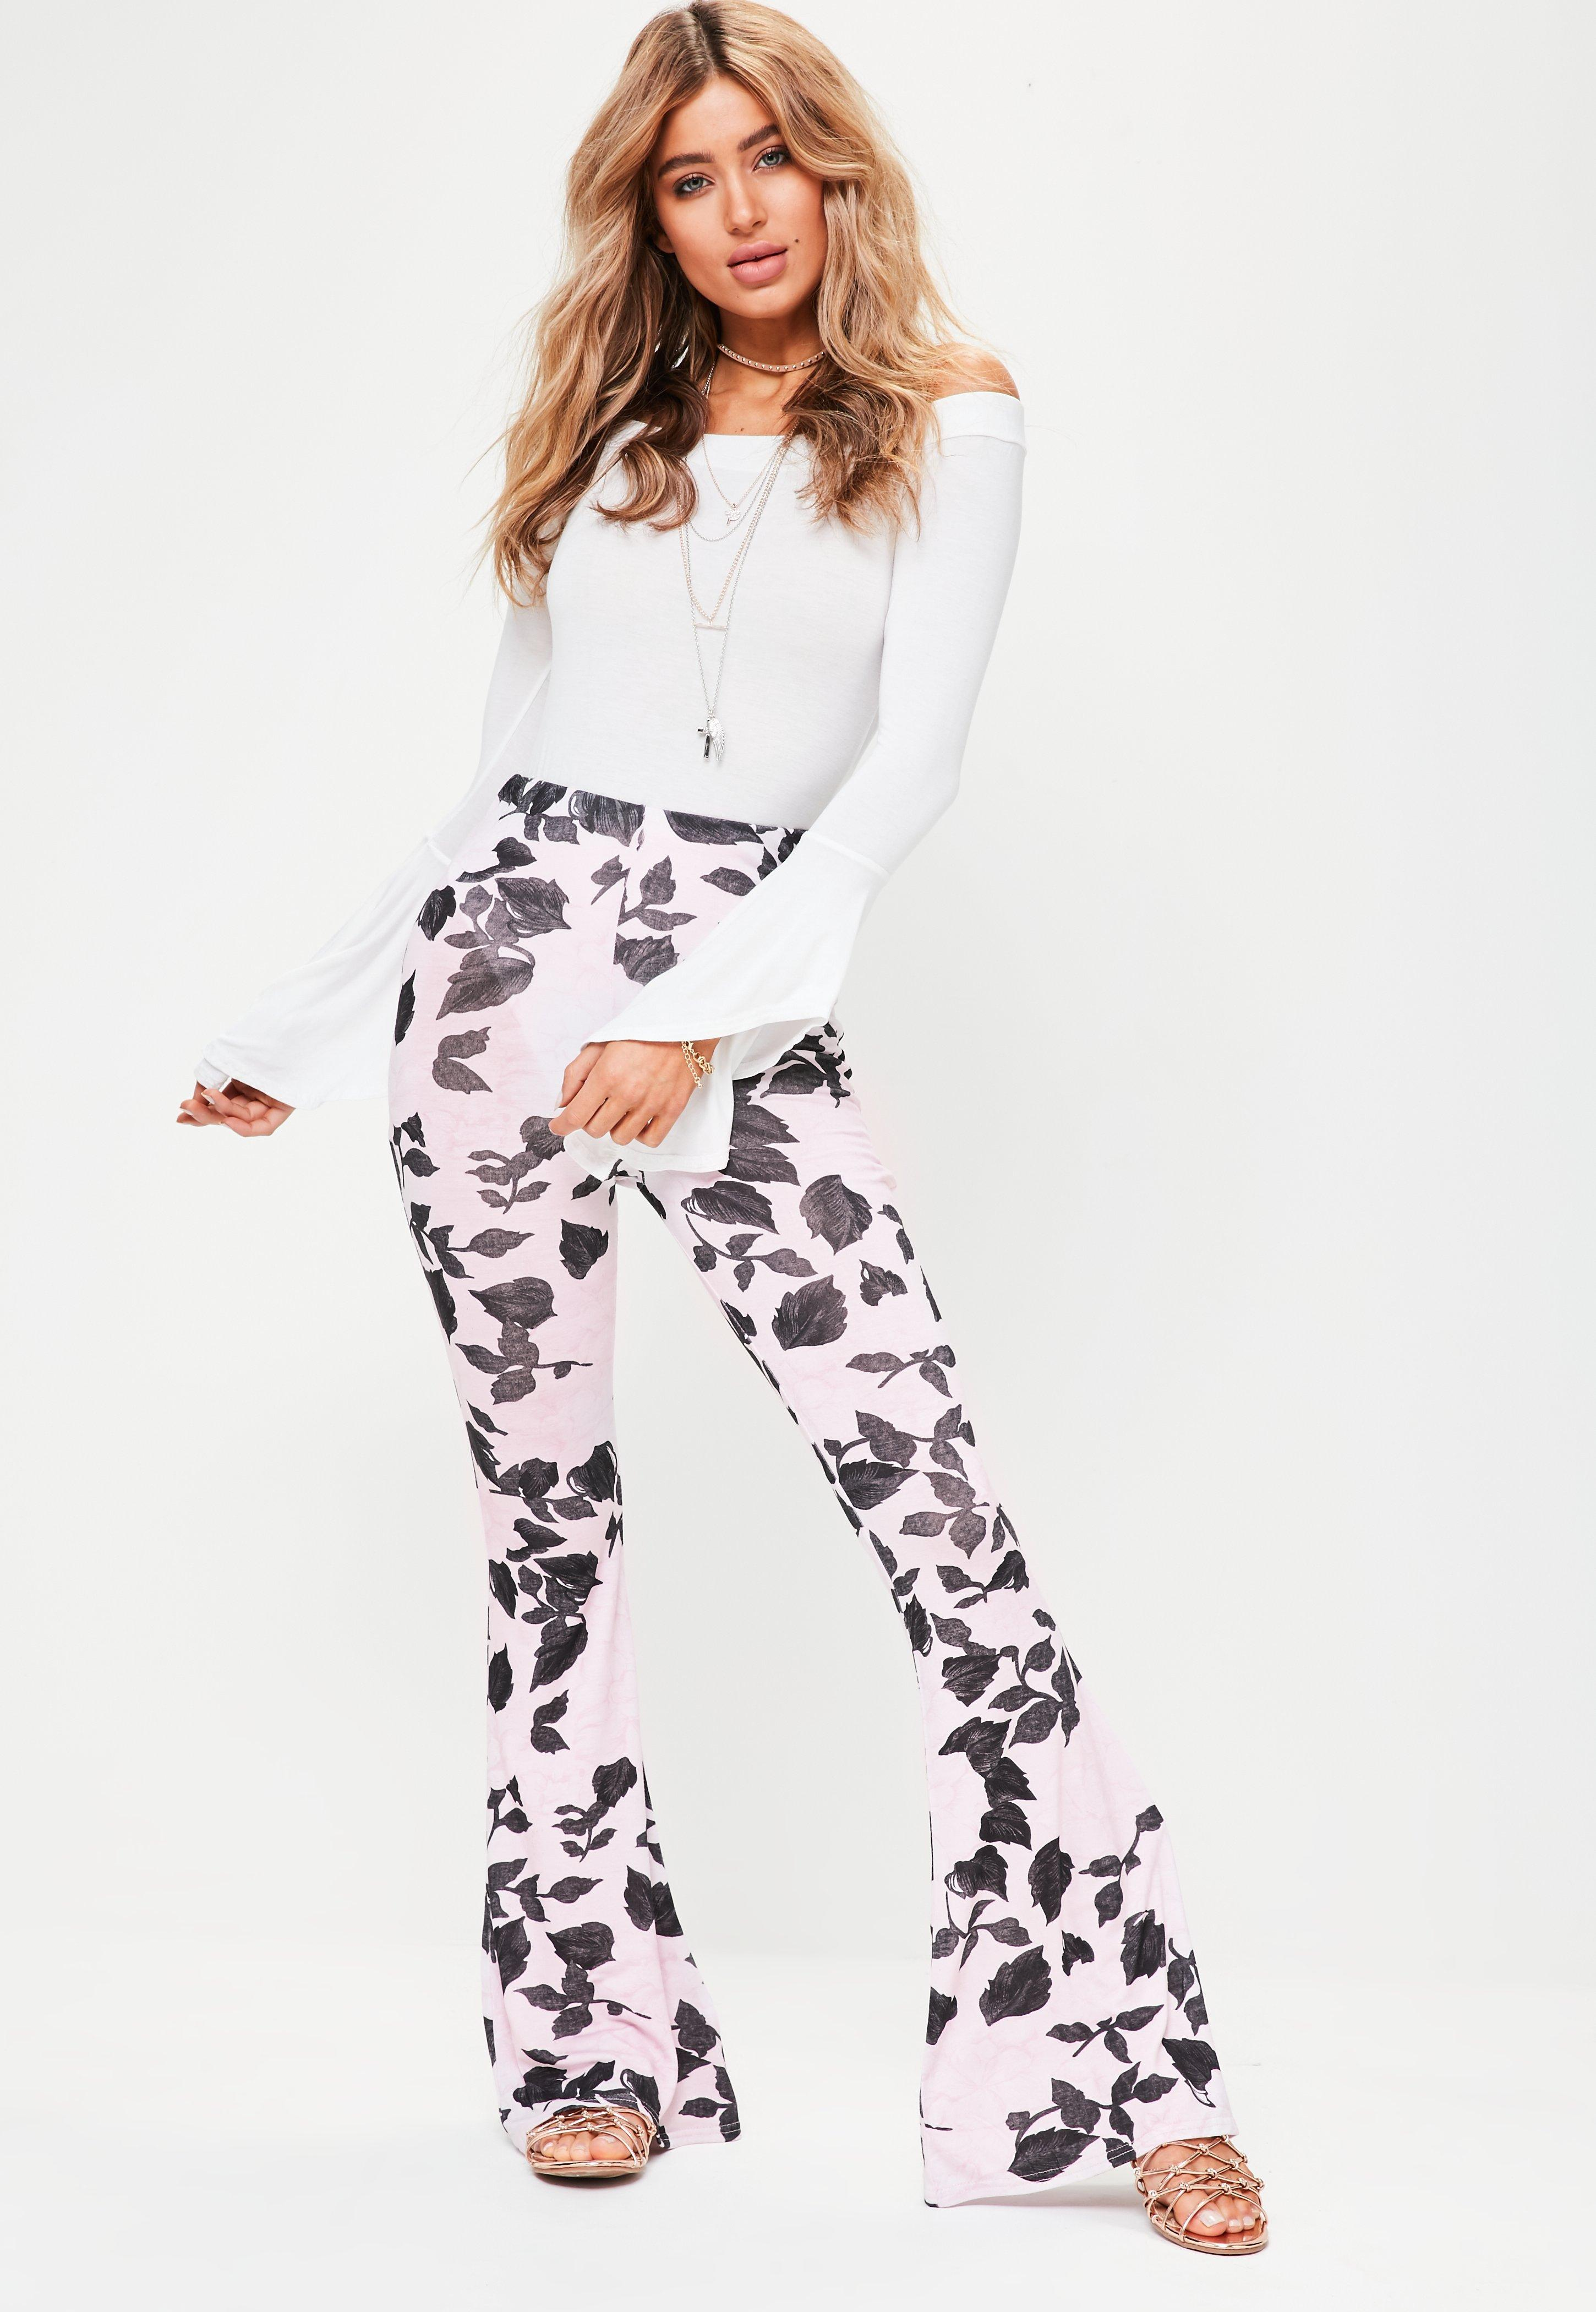 Missguided Floral Mesh Kick Flared Trousers Buy Cheap Manchester Cheap Footlocker NJ7H8xqx